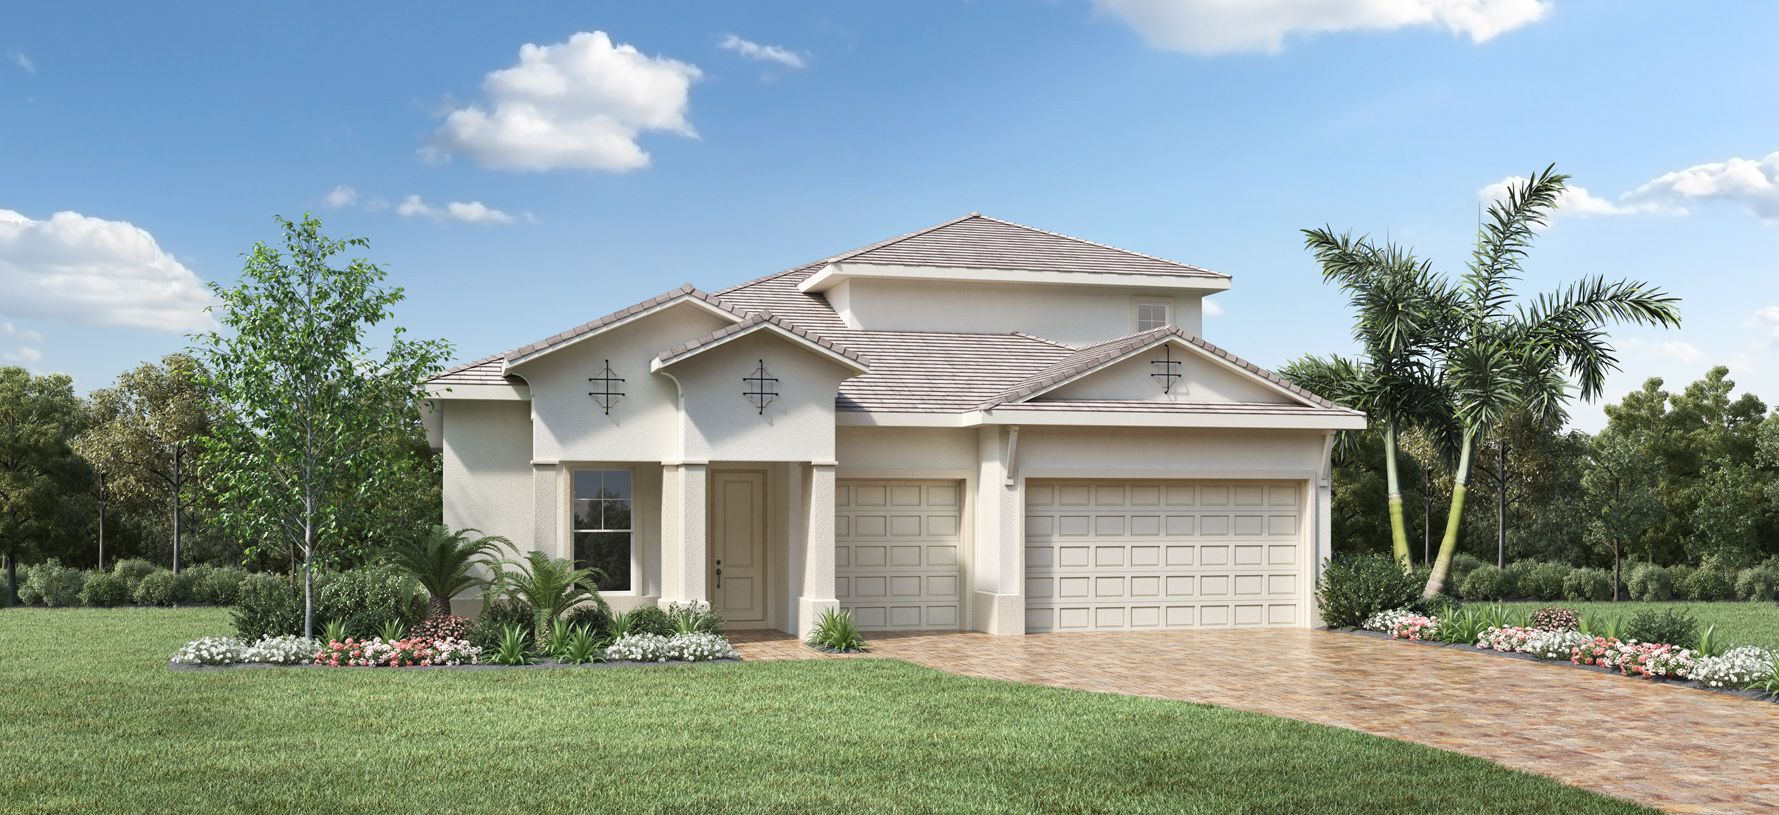 Exterior featured in the Athena Elite By Toll Brothers in Naples, FL